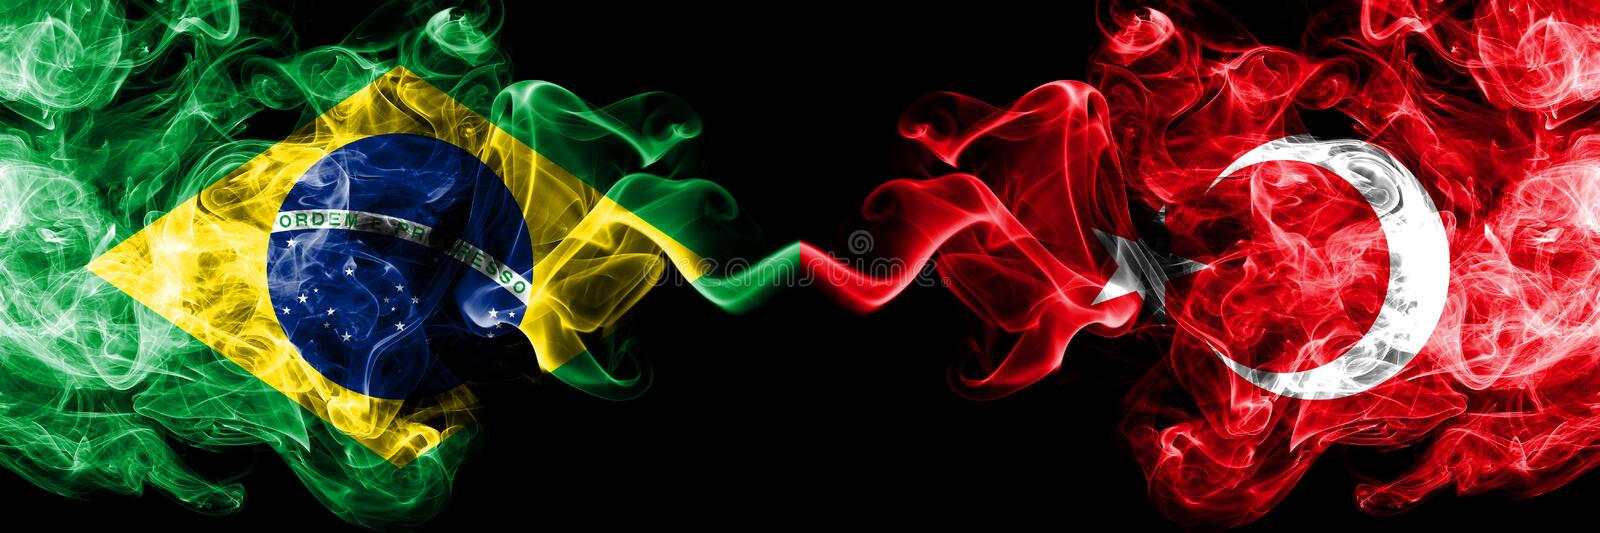 Brazil vs Turkey, Turkish smoke flags placed side by side. Thick colored silky smoke flags of Brazilian and Turkey, Turkish.  royalty free stock photos